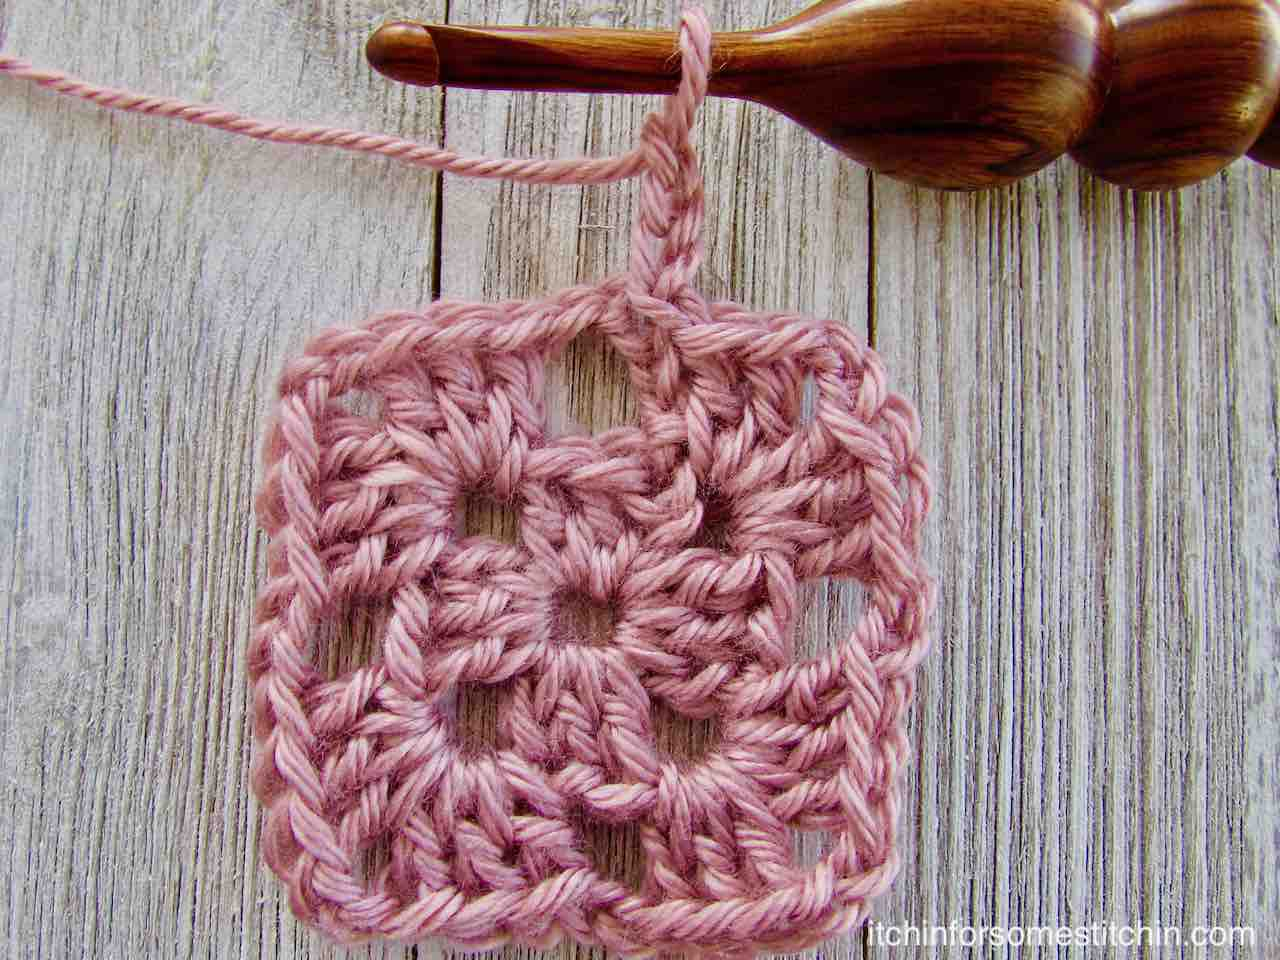 How to Crochet a Basic Granny Square by http://www.itchinforsomestitchin.com